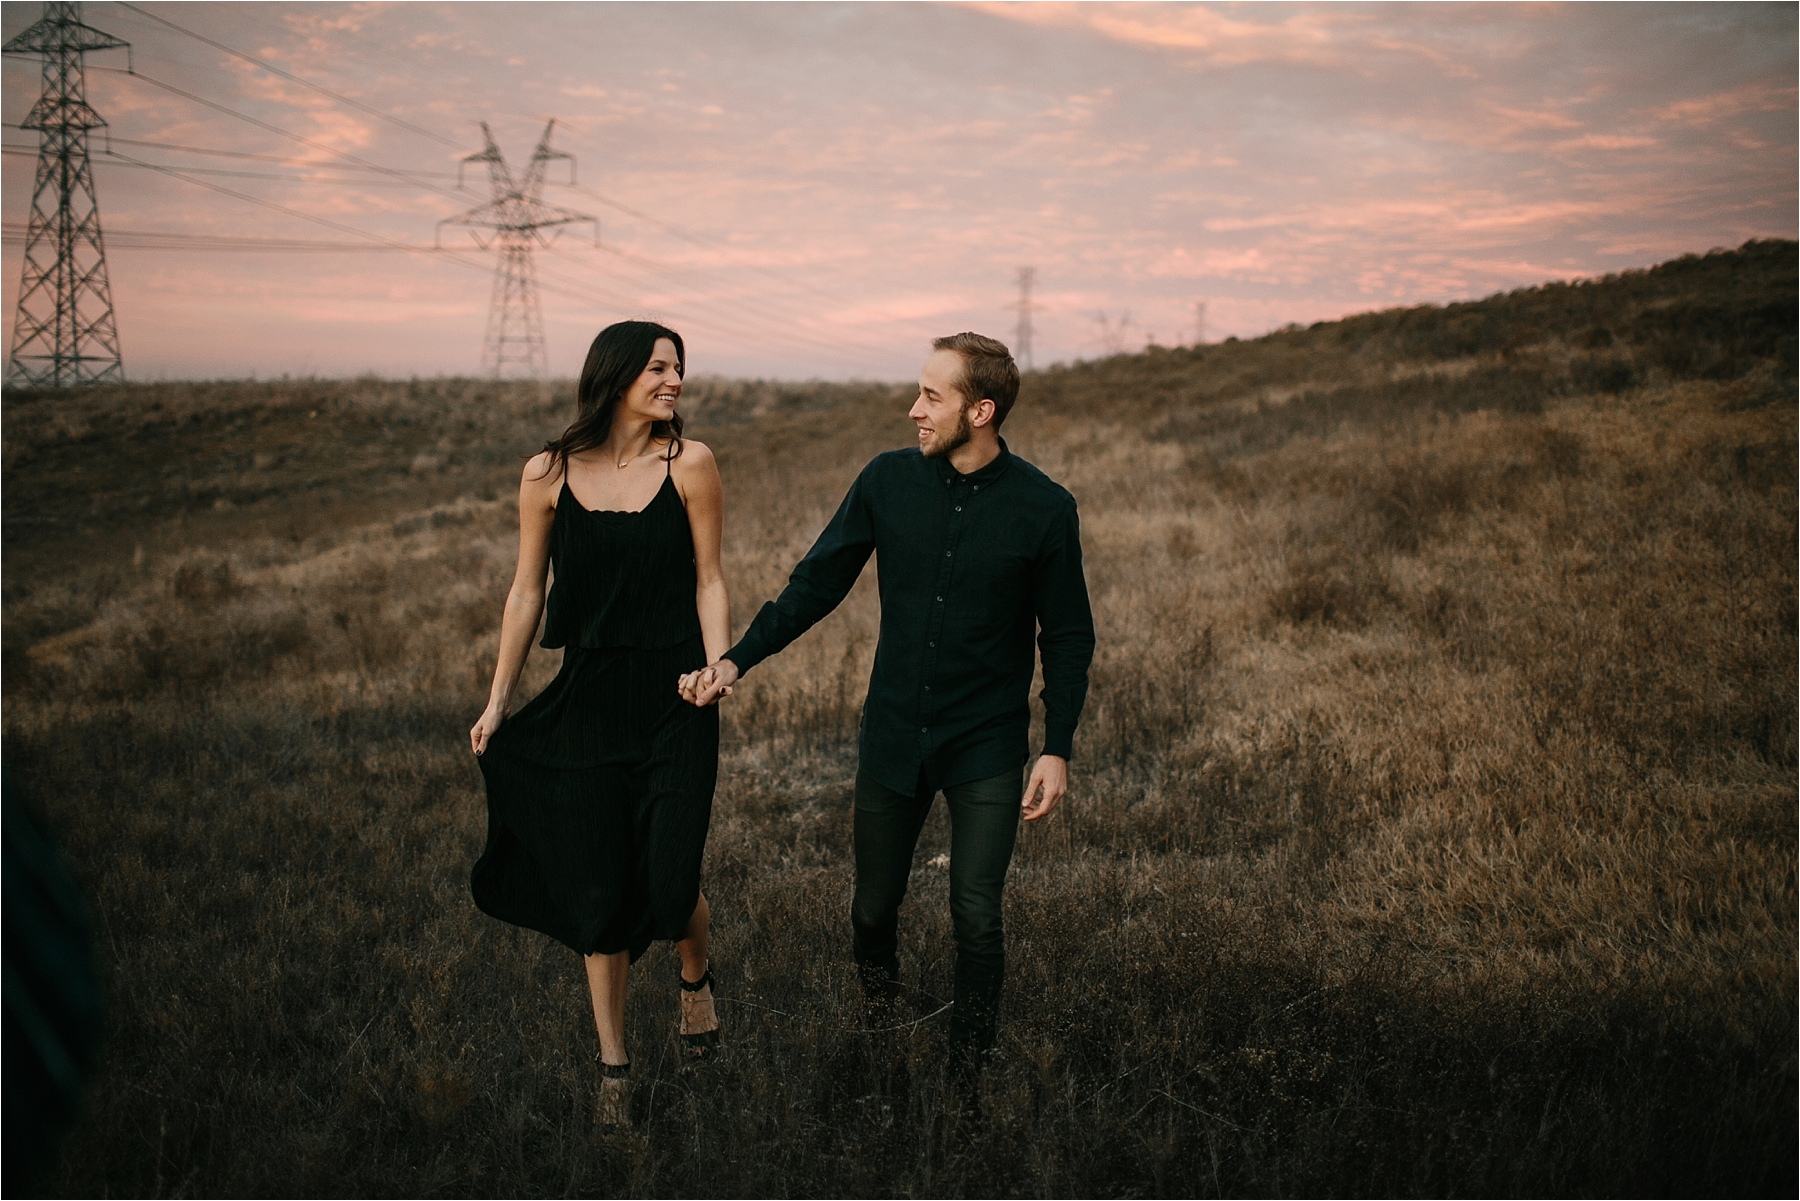 Trey + Phoebe __ a playful, intimate engagement session with dark_neutral outfit inspiration by North Texas Wedding Photographer Rachel Meagan Photography __ 64